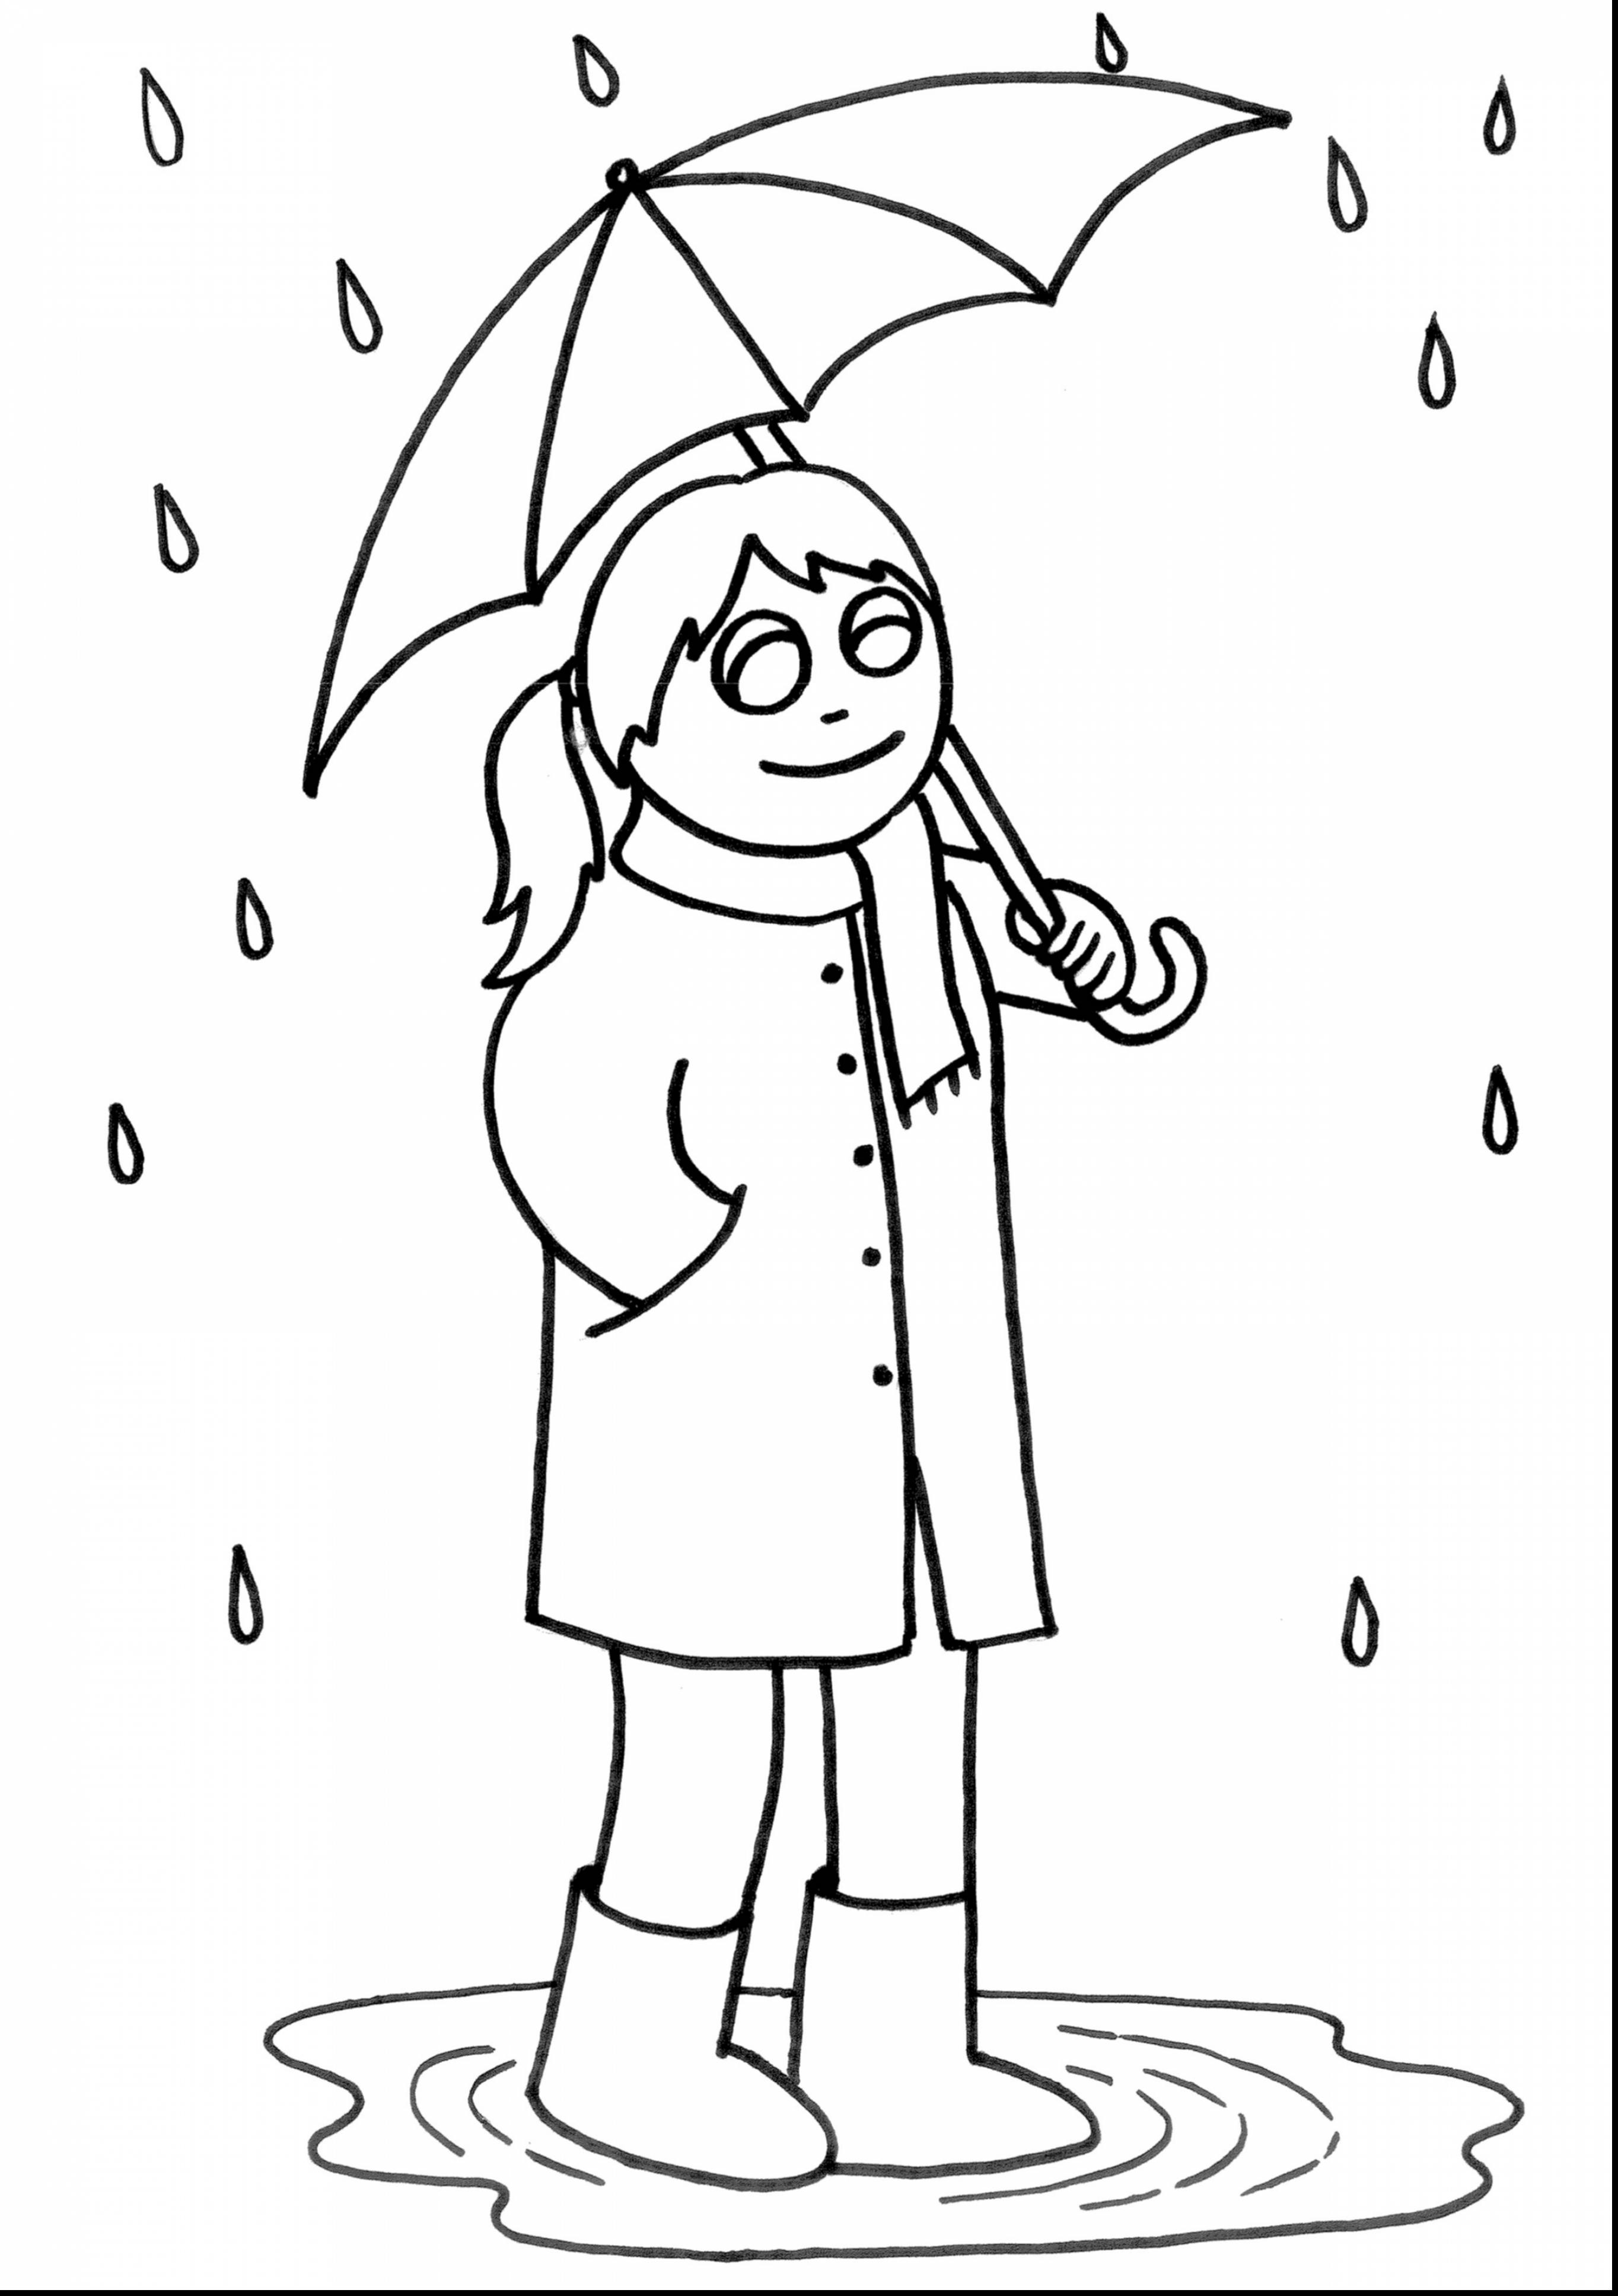 Wallpaper Coloring Pages At Getdrawings